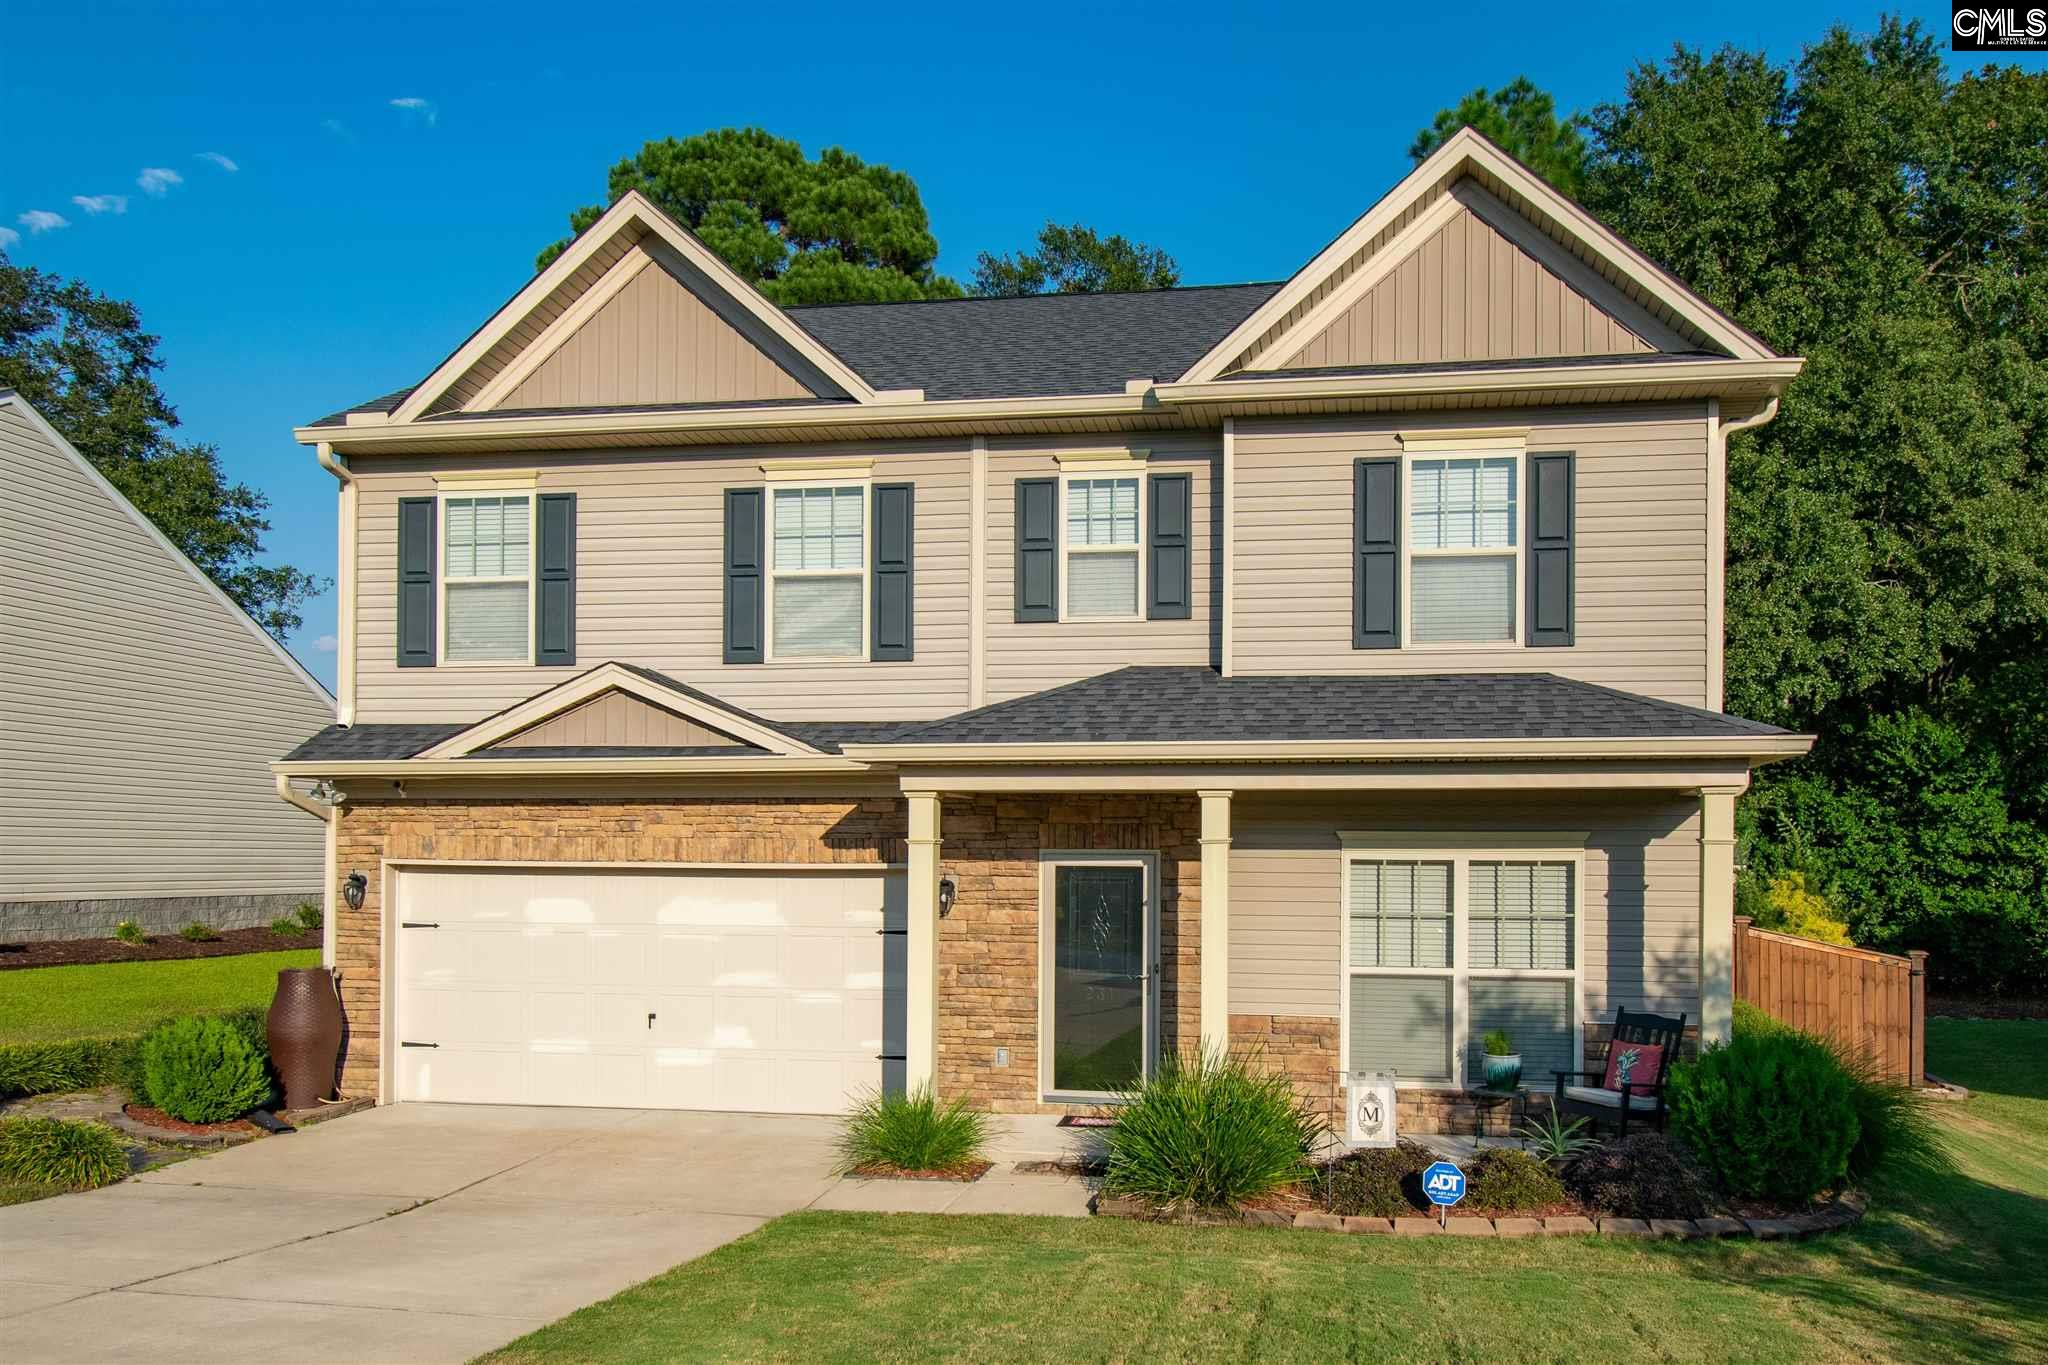 231 Peach Hill Lexington, SC 29072